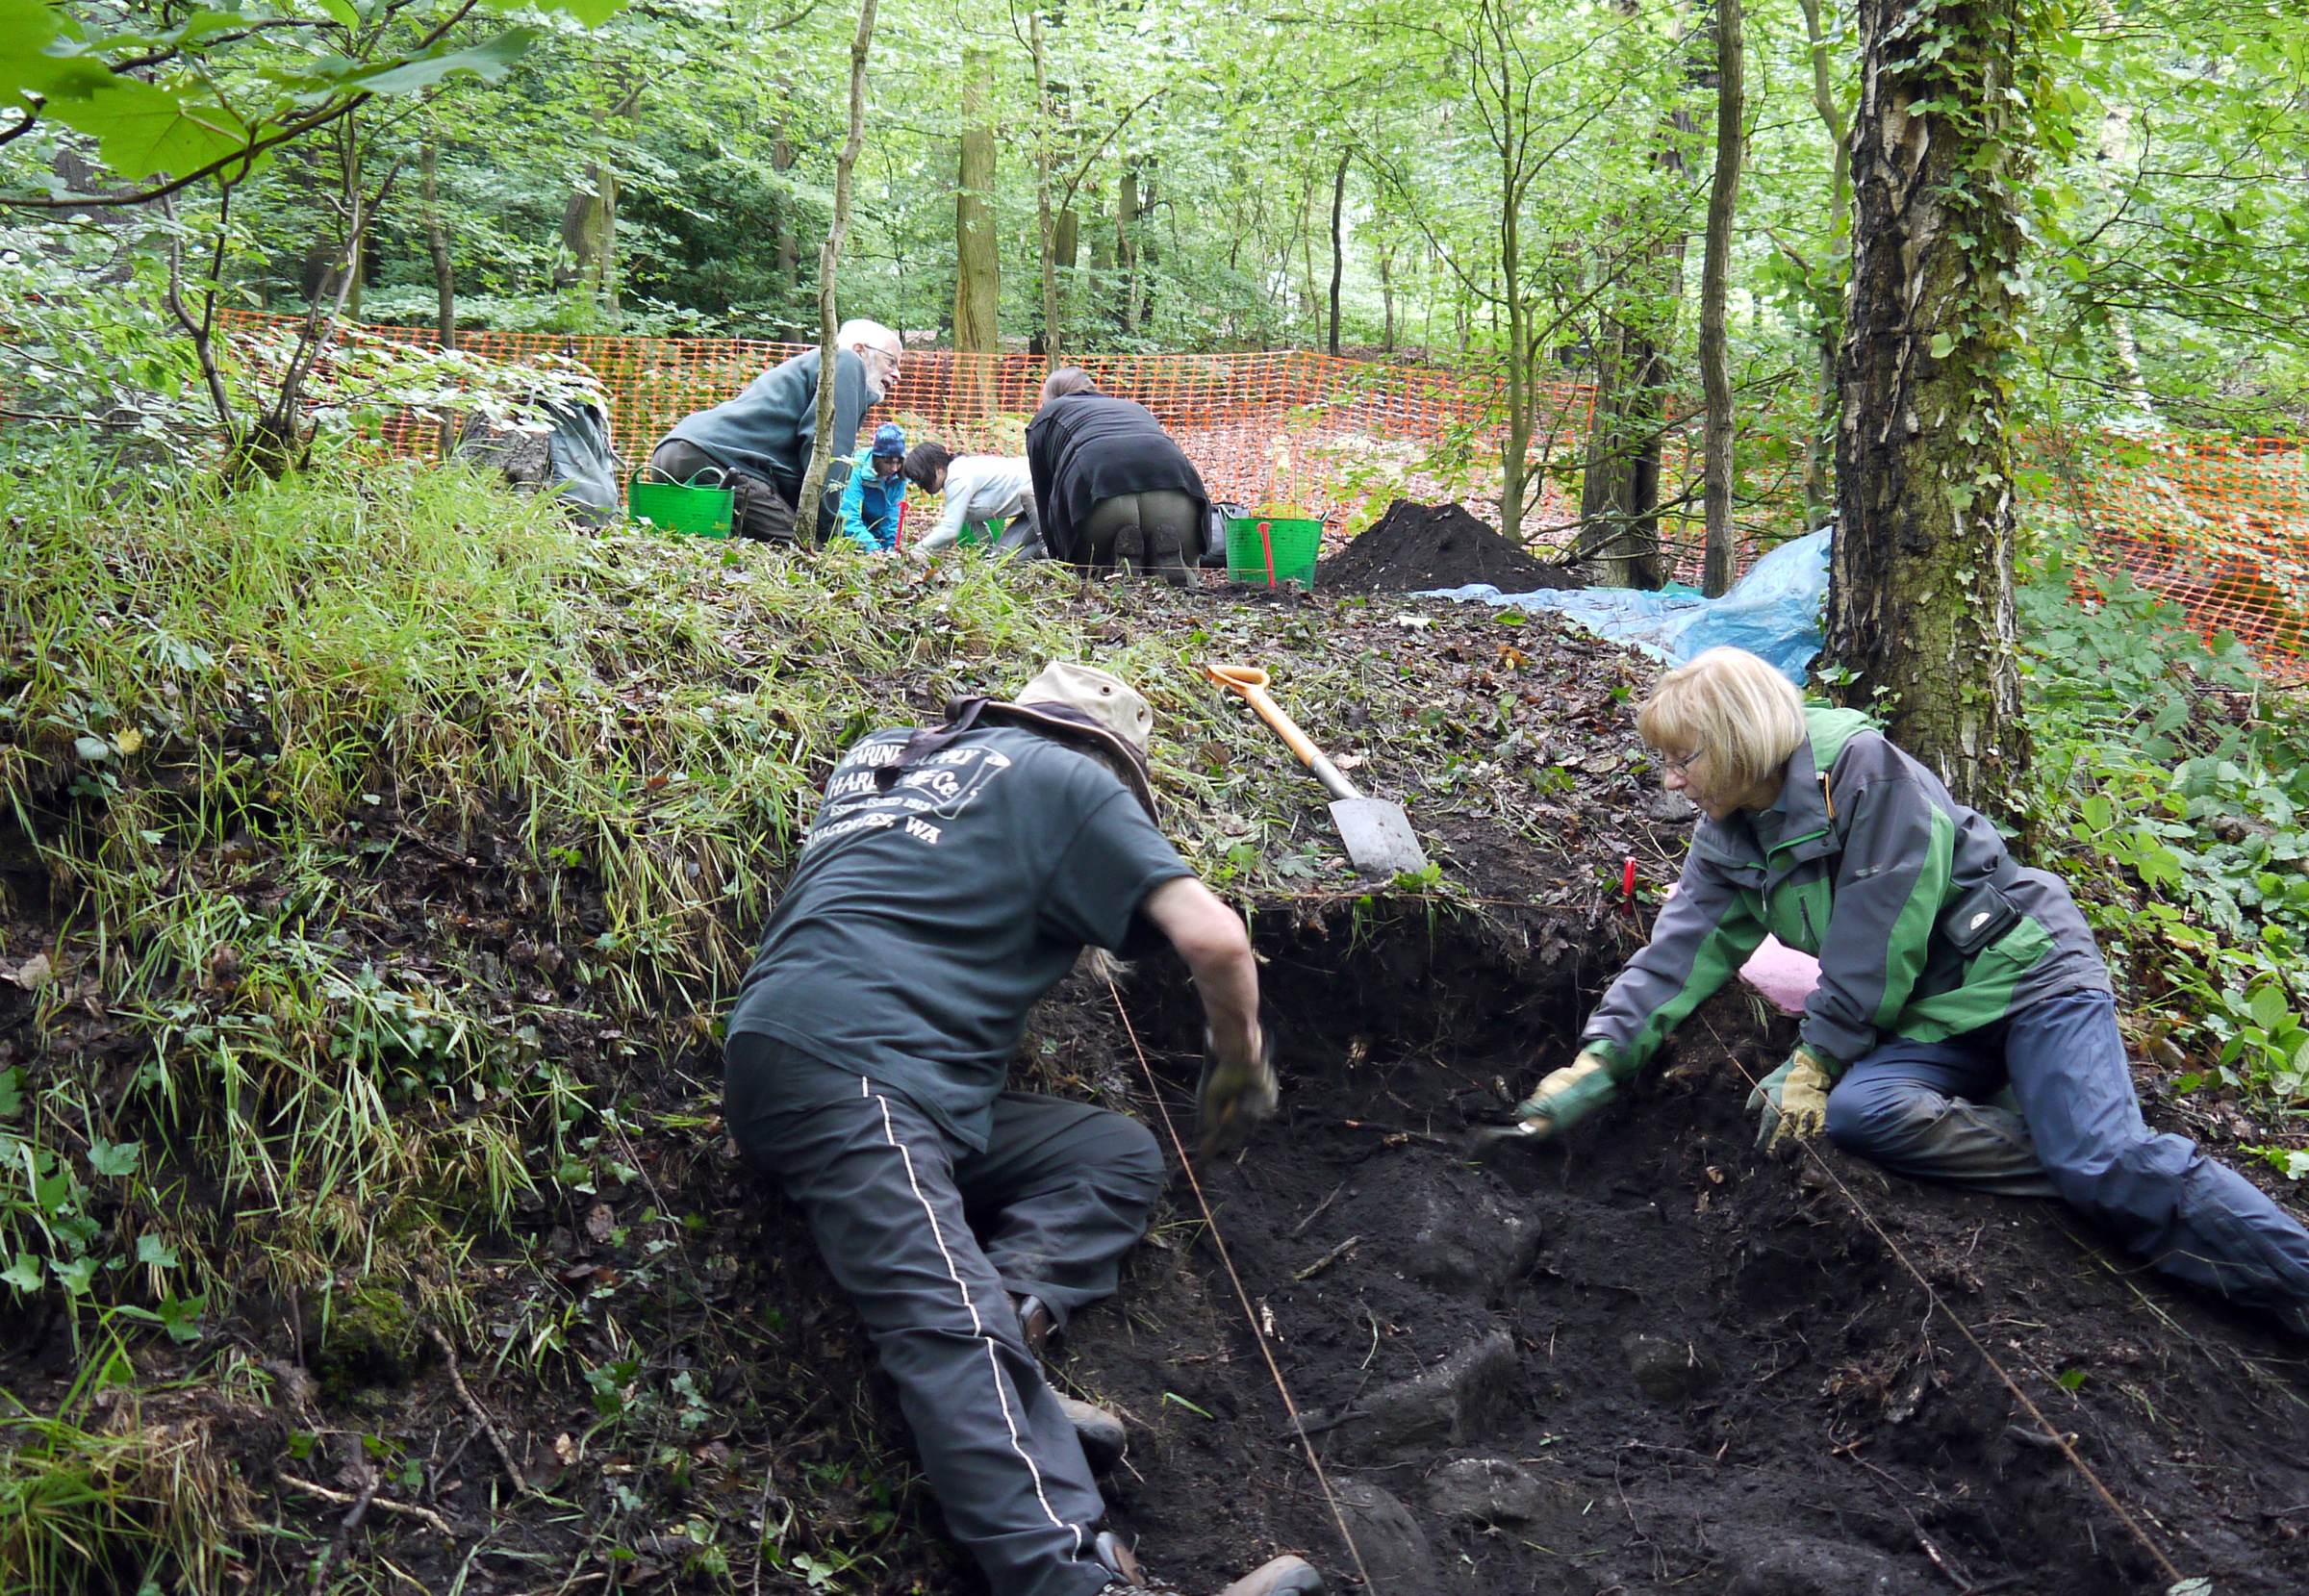 Evidence of ancient charcoal industry found in woods in Bradford district